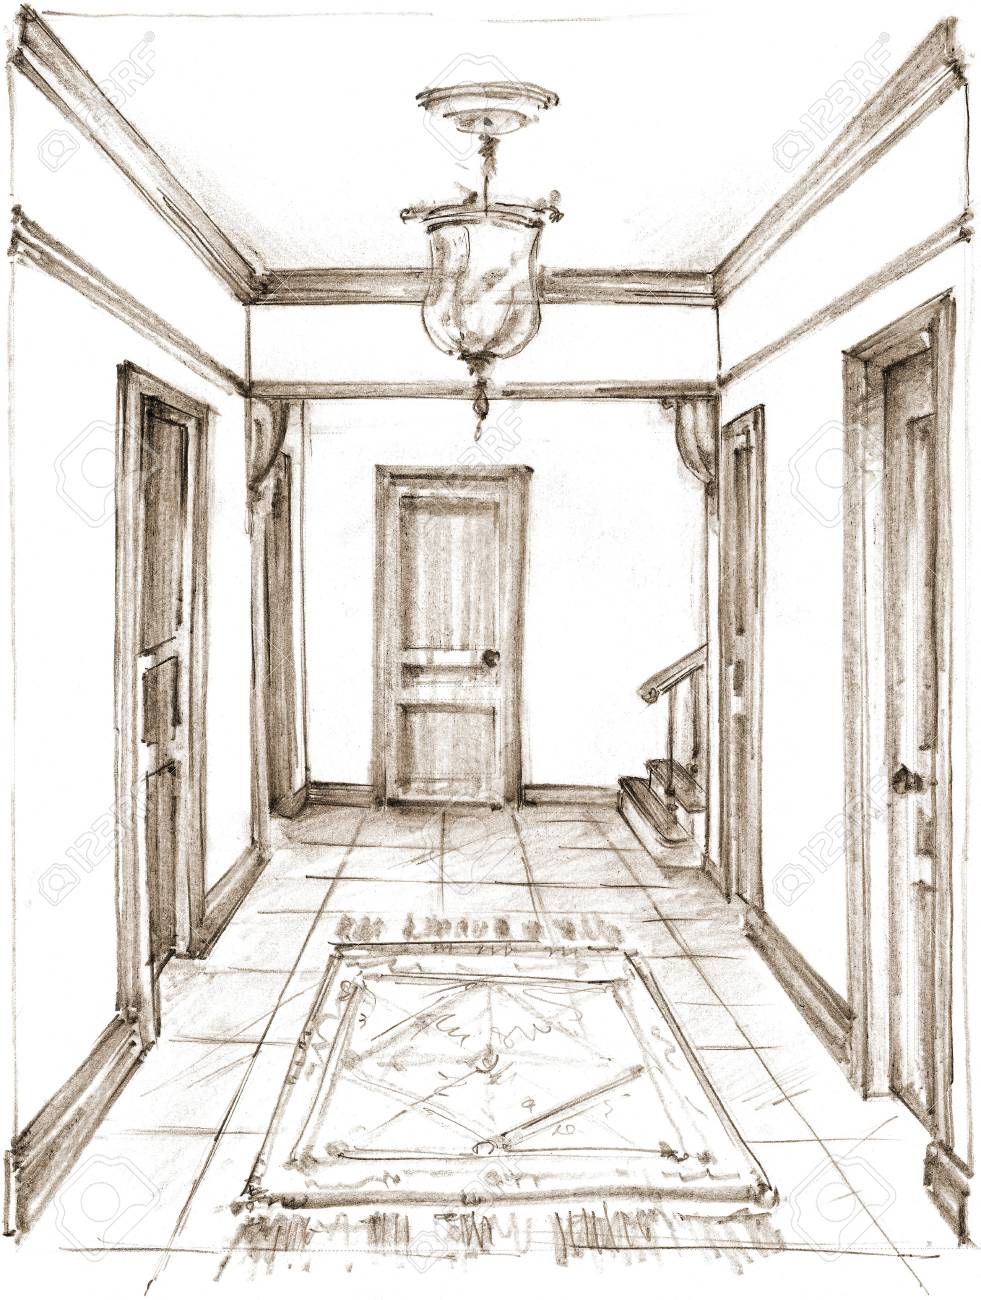 Pencil drawing of a classic hallway interior on white background stock photo 92161000